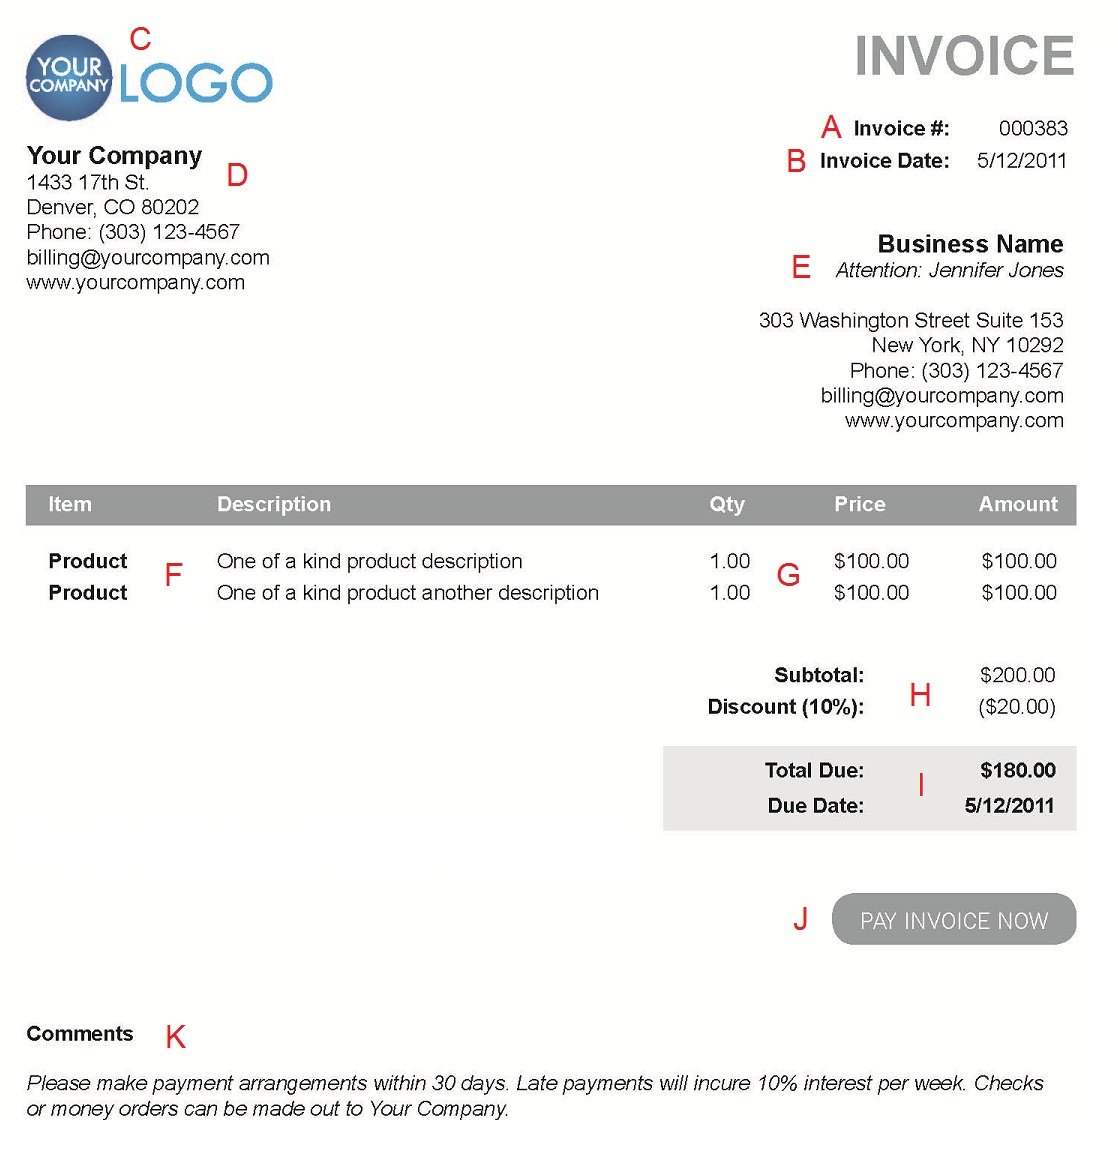 Ultrablogus  Seductive The  Different Sections Of An Electronic Payment Invoice With Luxury A  With Amusing Example Of A Invoice Also Best Small Business Invoice Software In Addition Toyota Invoice Prices And Basware Invoice Processing As Well As Invoice For Work Additionally Canadian Customs Invoice Instructions From Paysimplecom With Ultrablogus  Luxury The  Different Sections Of An Electronic Payment Invoice With Amusing A  And Seductive Example Of A Invoice Also Best Small Business Invoice Software In Addition Toyota Invoice Prices From Paysimplecom